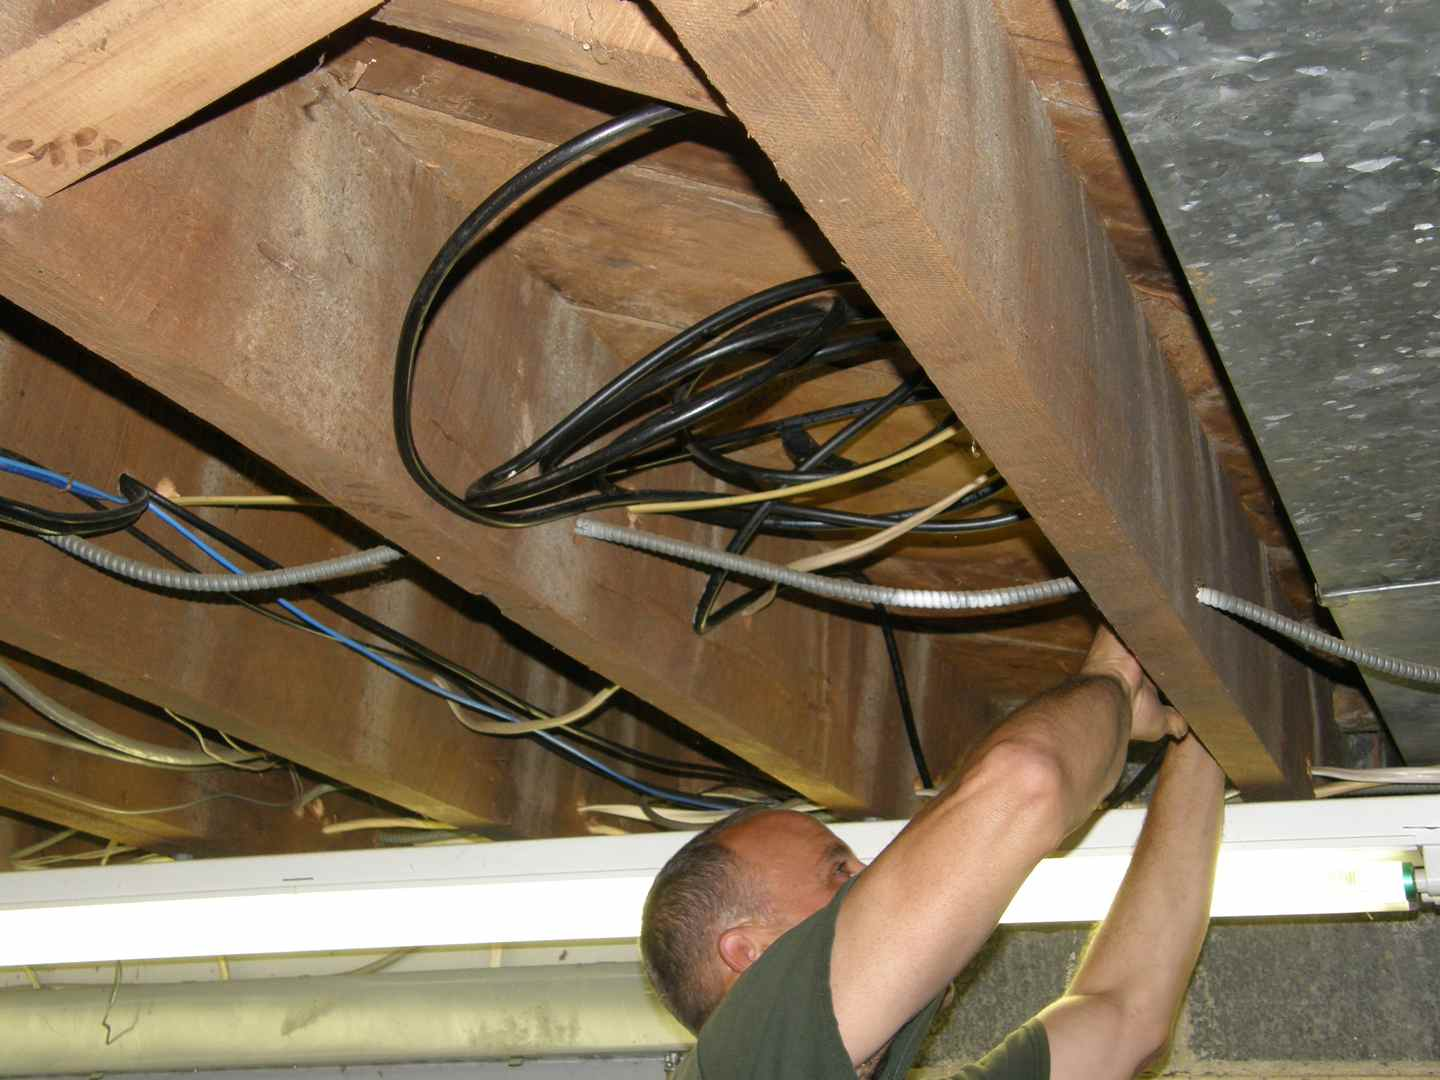 R.L. Thompson Electrical Contractor